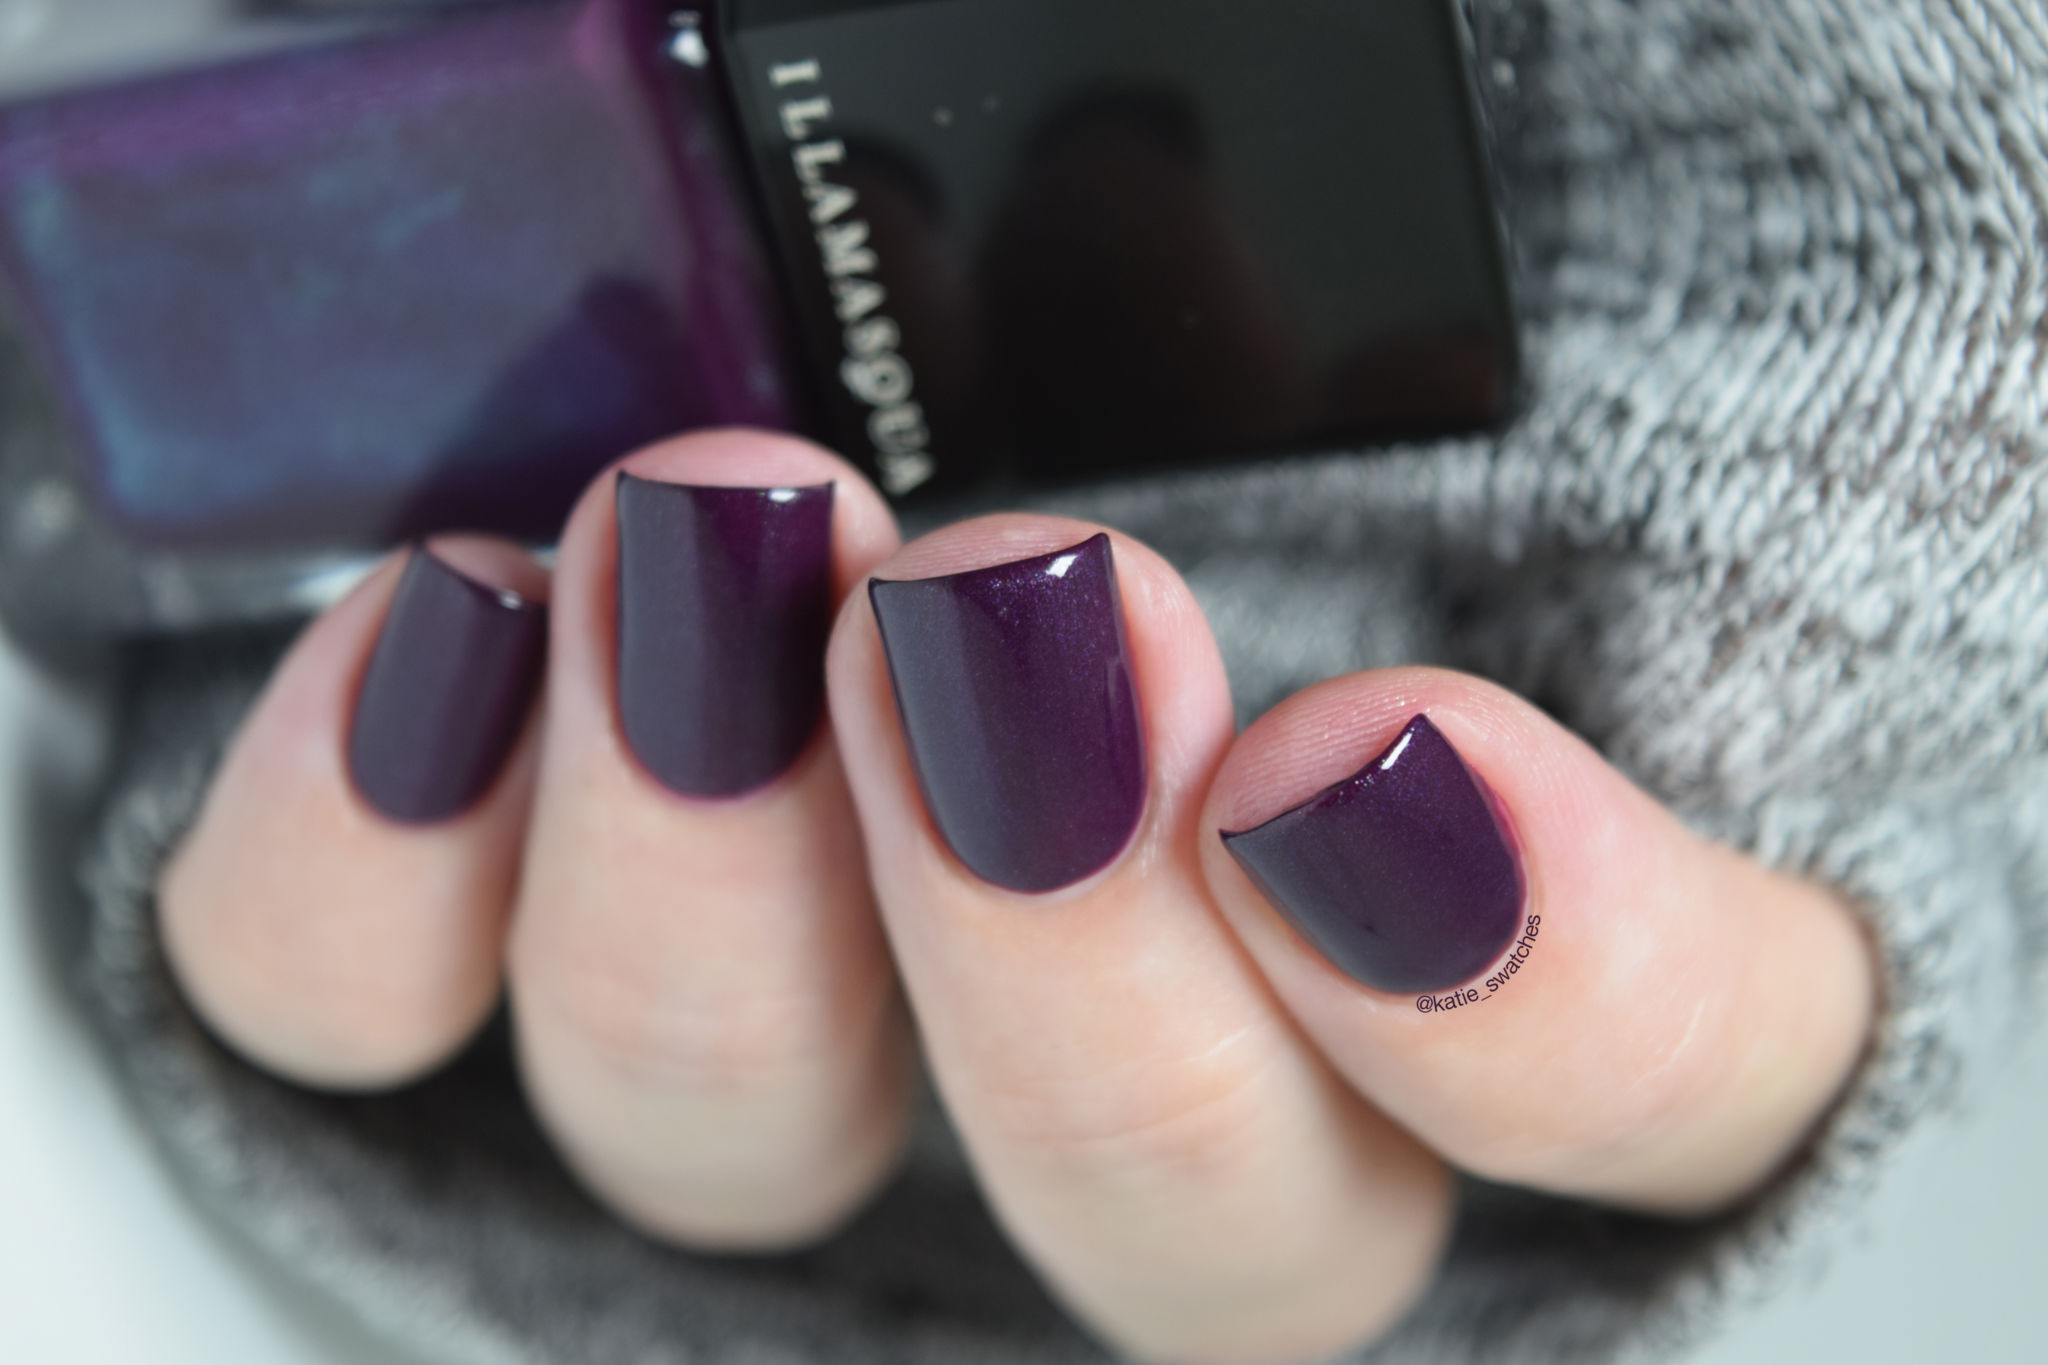 Illamasqua Gothiqua nail polish - dark purple